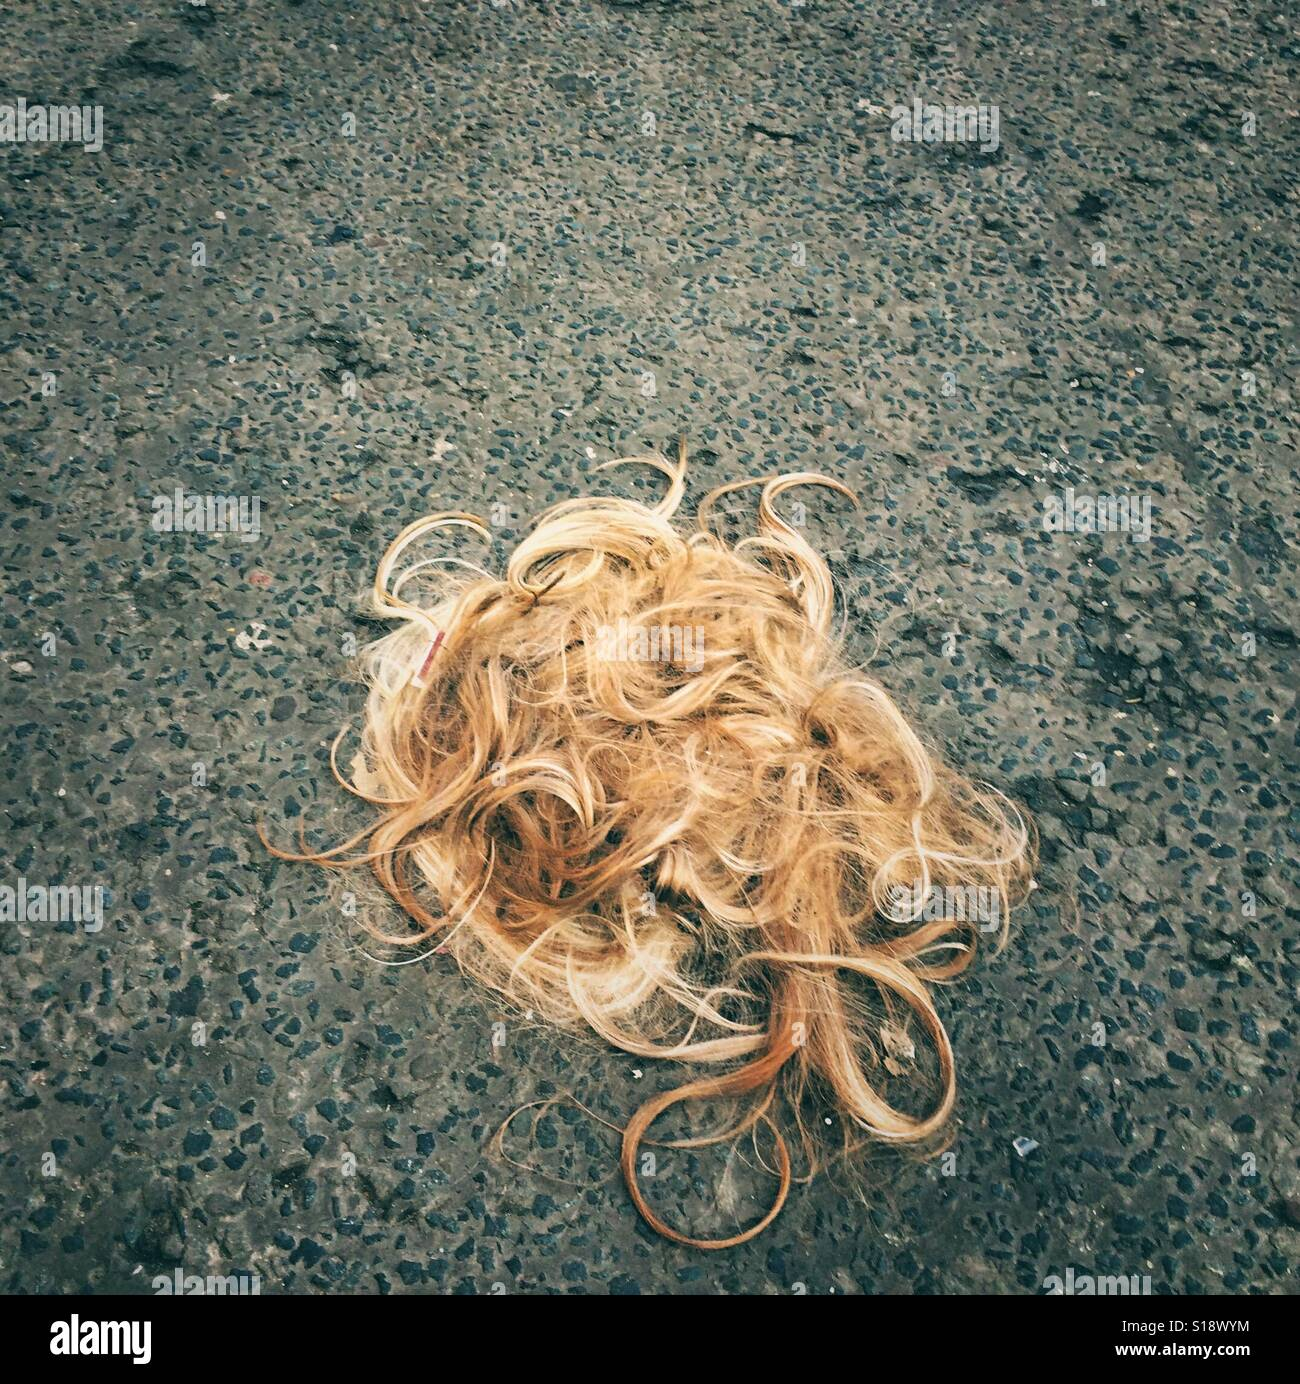 A blond hairpiece or wig discarded in a street - Stock Image